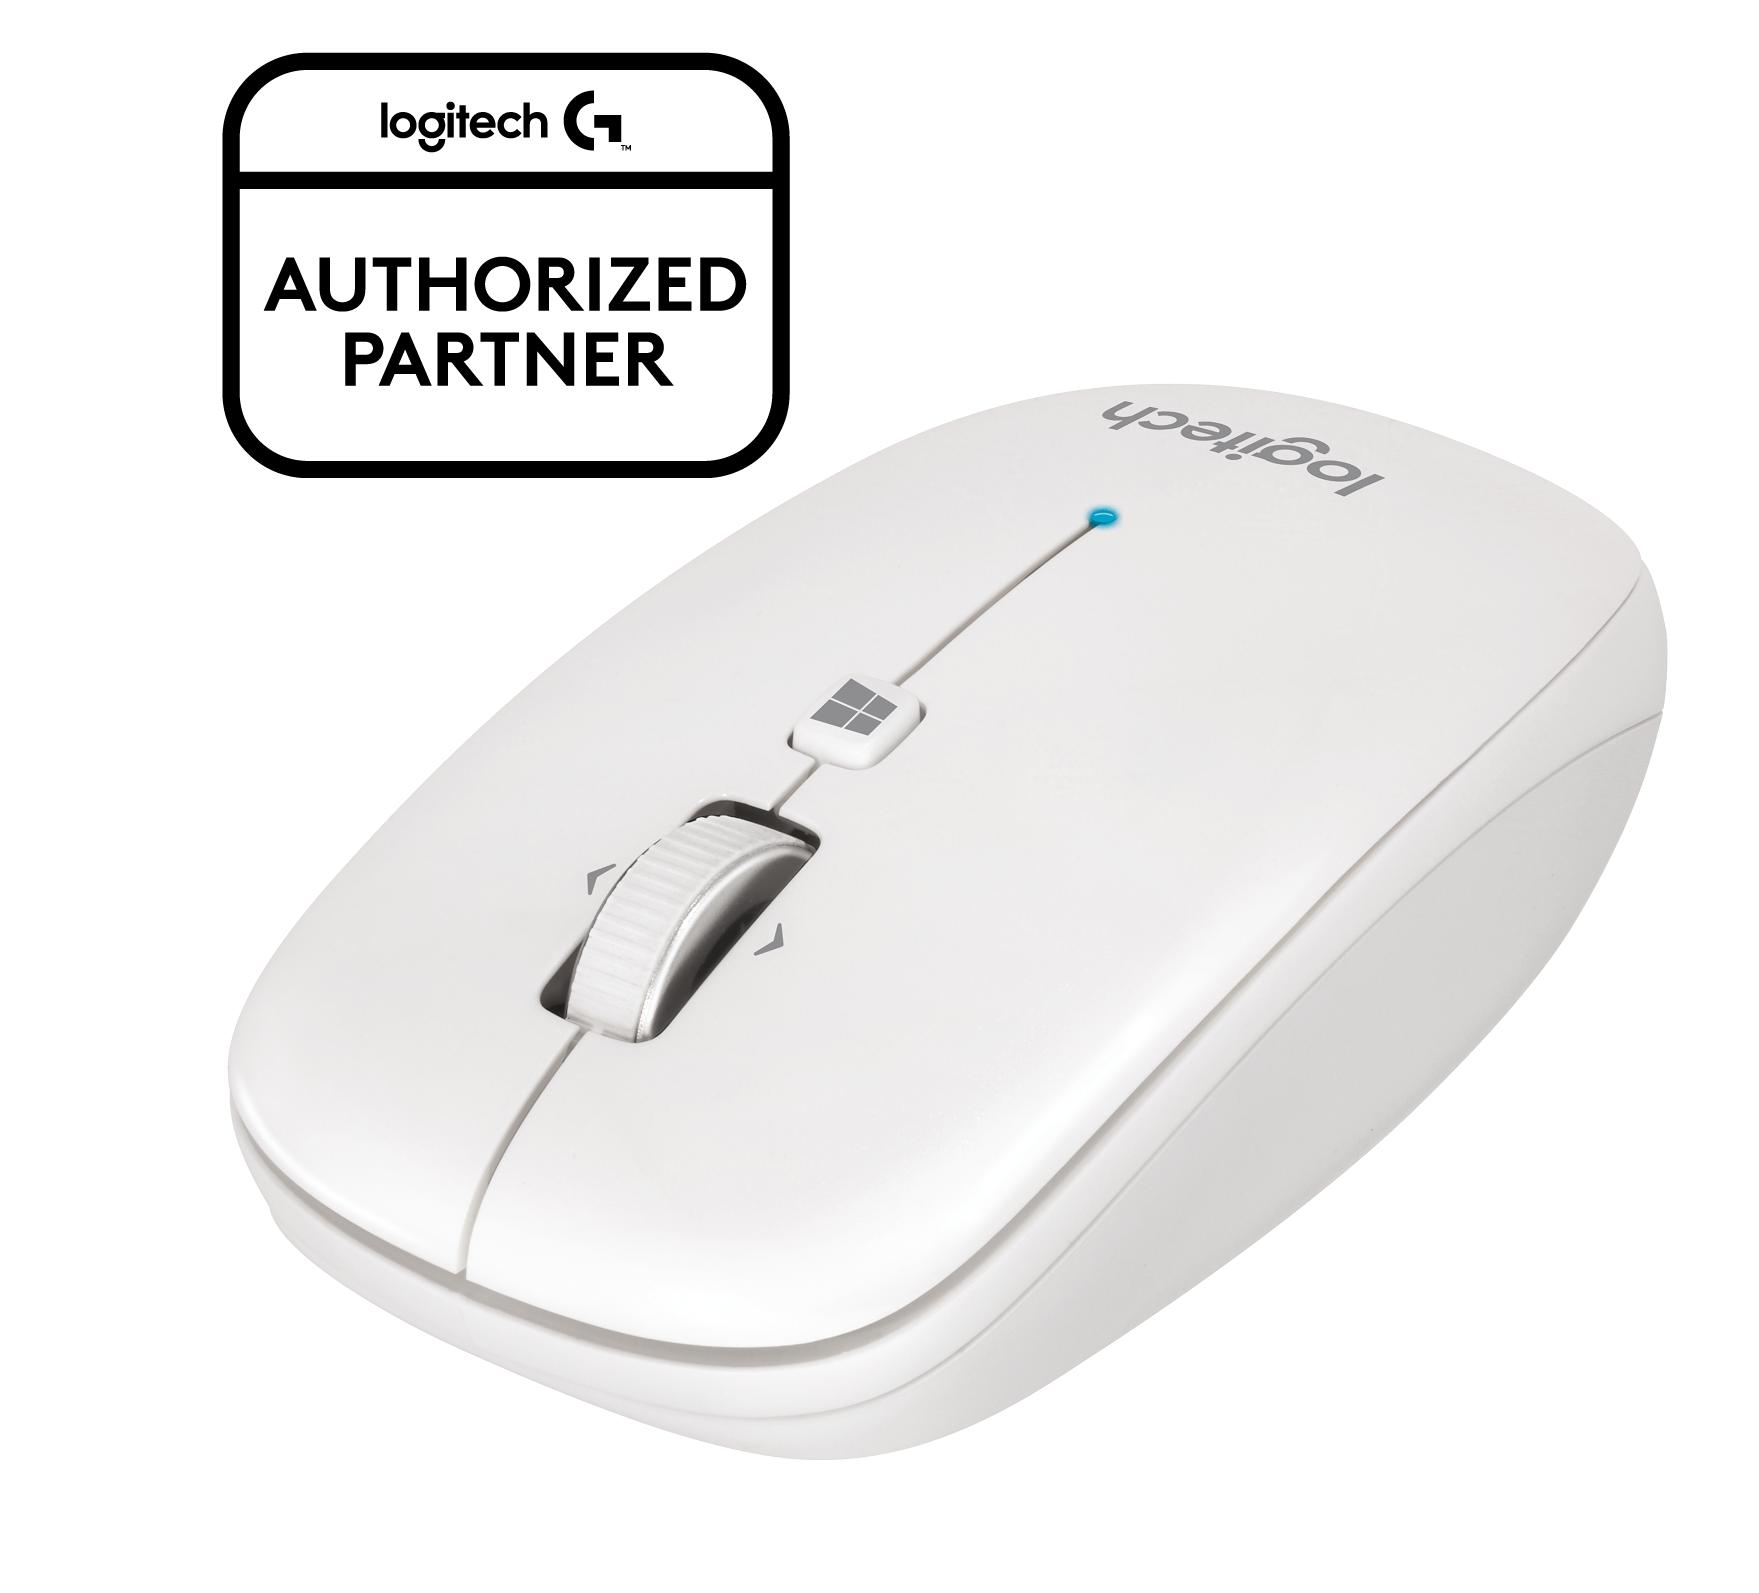 Logitech MX Anywhere 2S Wireless Mouse – Use on Any Surface